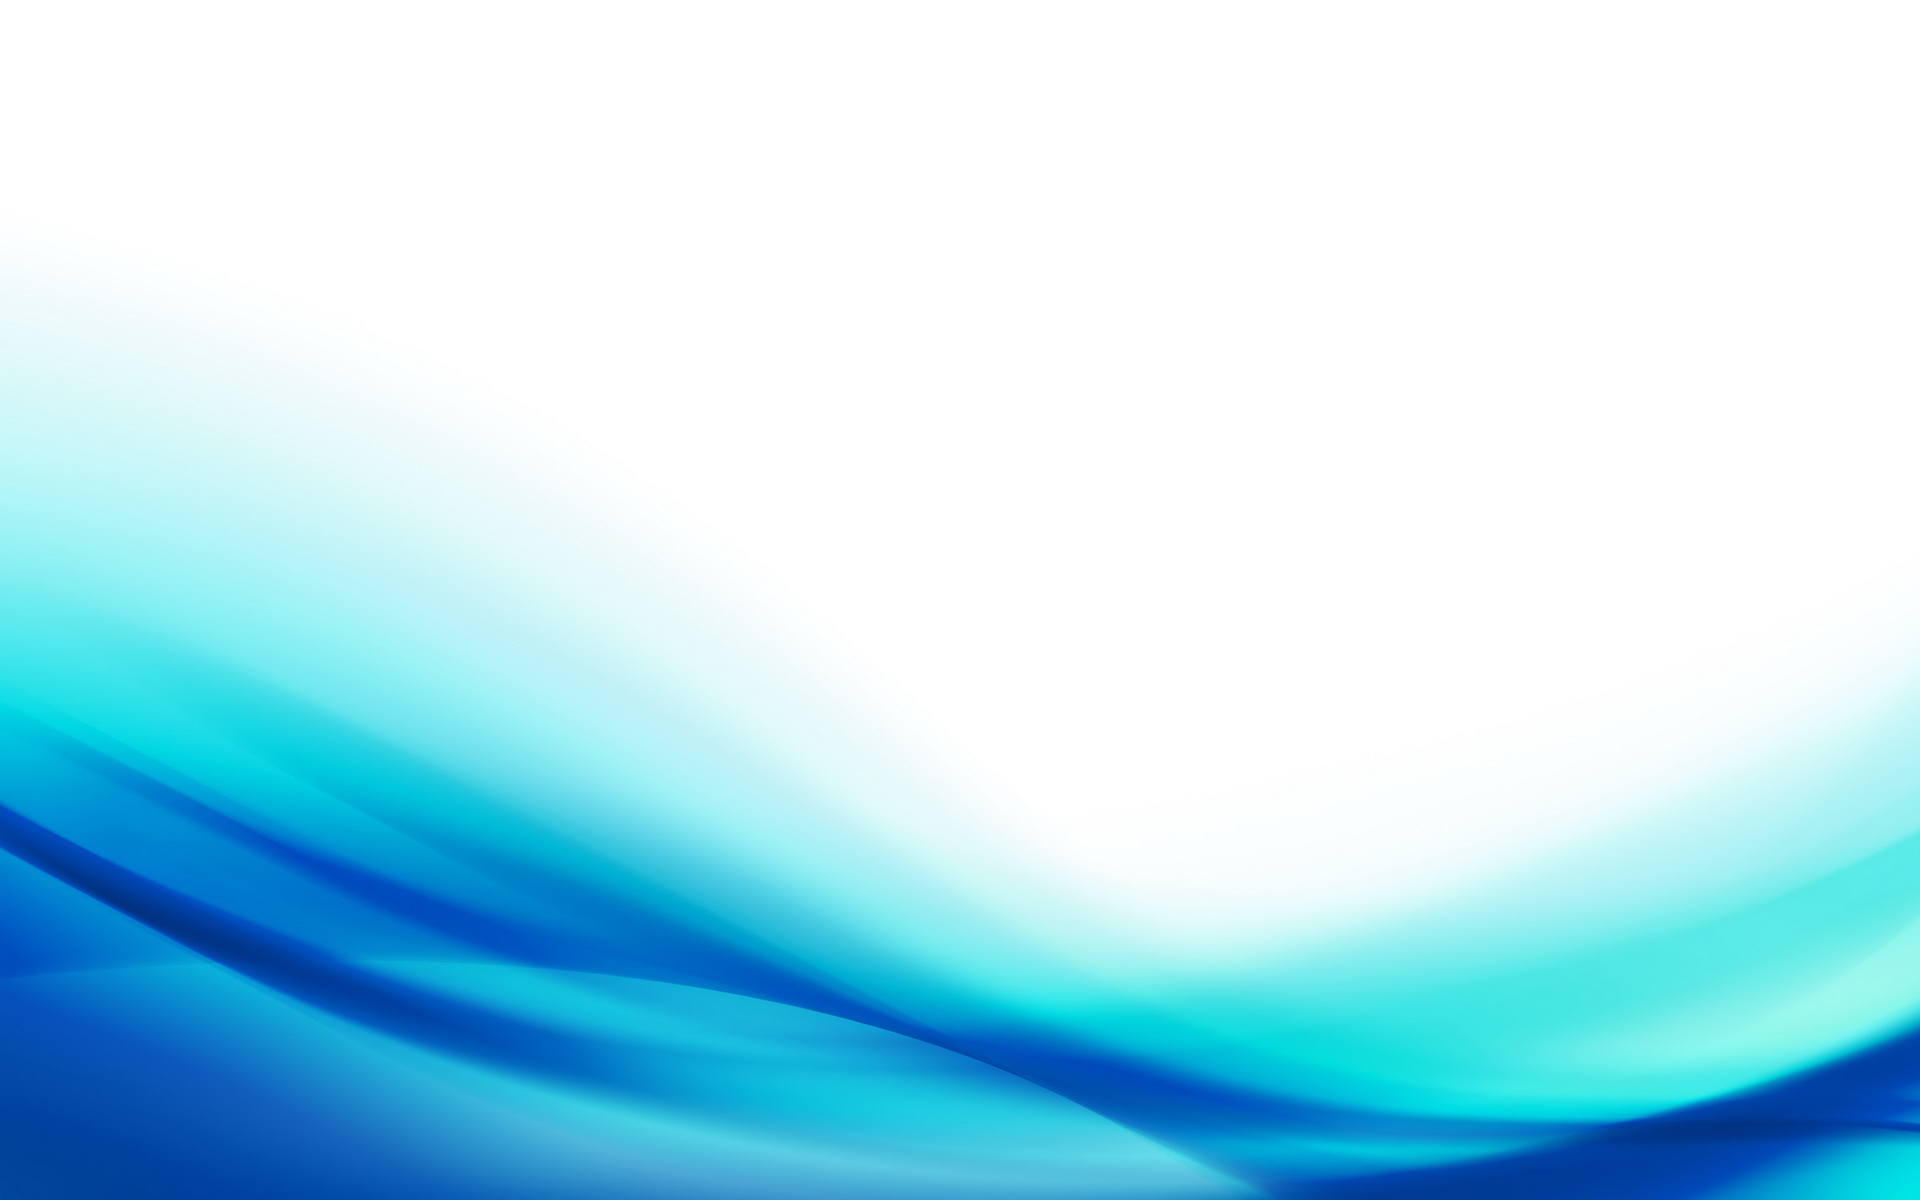 Light Blue Backgrounds 18233 1920x1200 px ~ HDWallSource.com